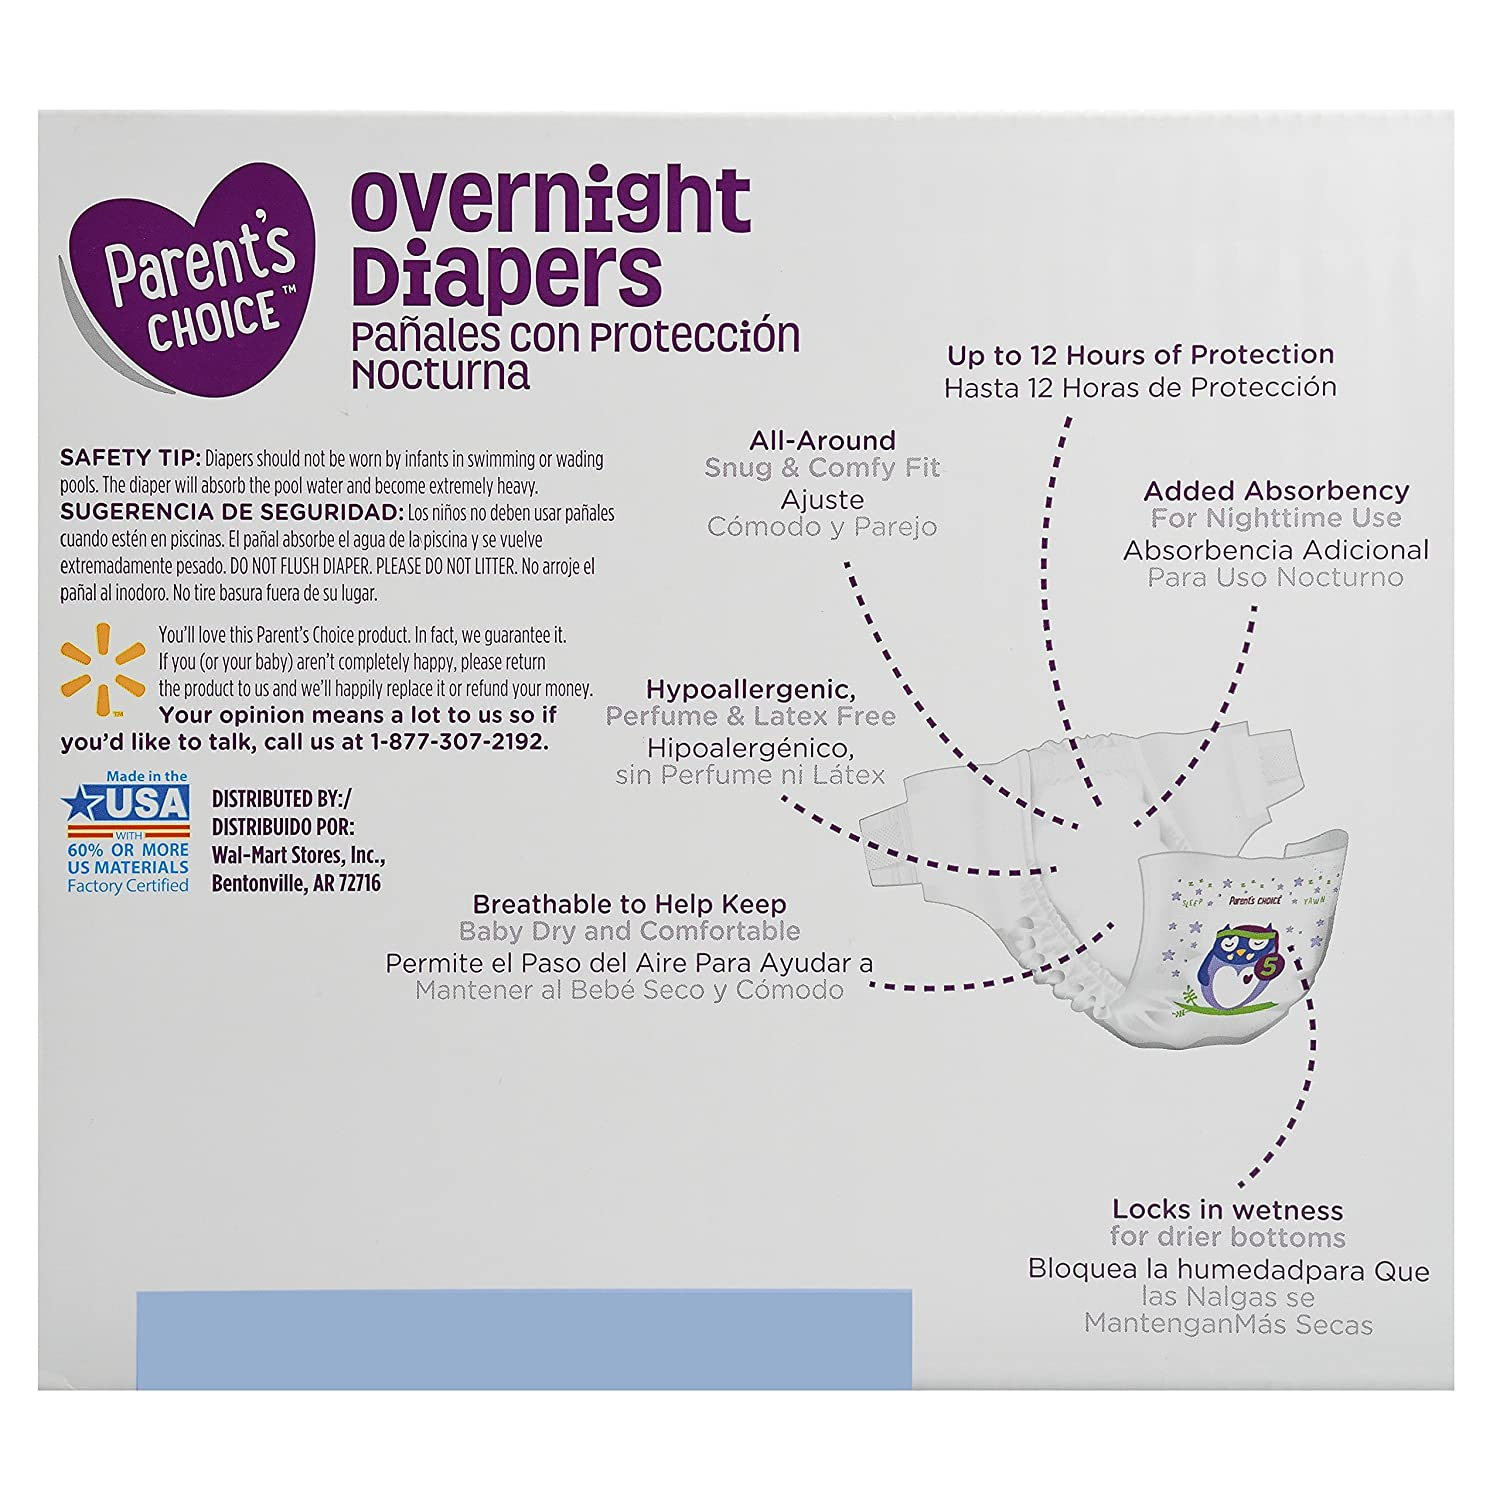 Amazon.com: Branded Parents Choice Overnight Diapers, Size 5, 66 Diapers , Weight 27lbs - Branded Diapers with fast delivery (Soft and Comfortable for ...